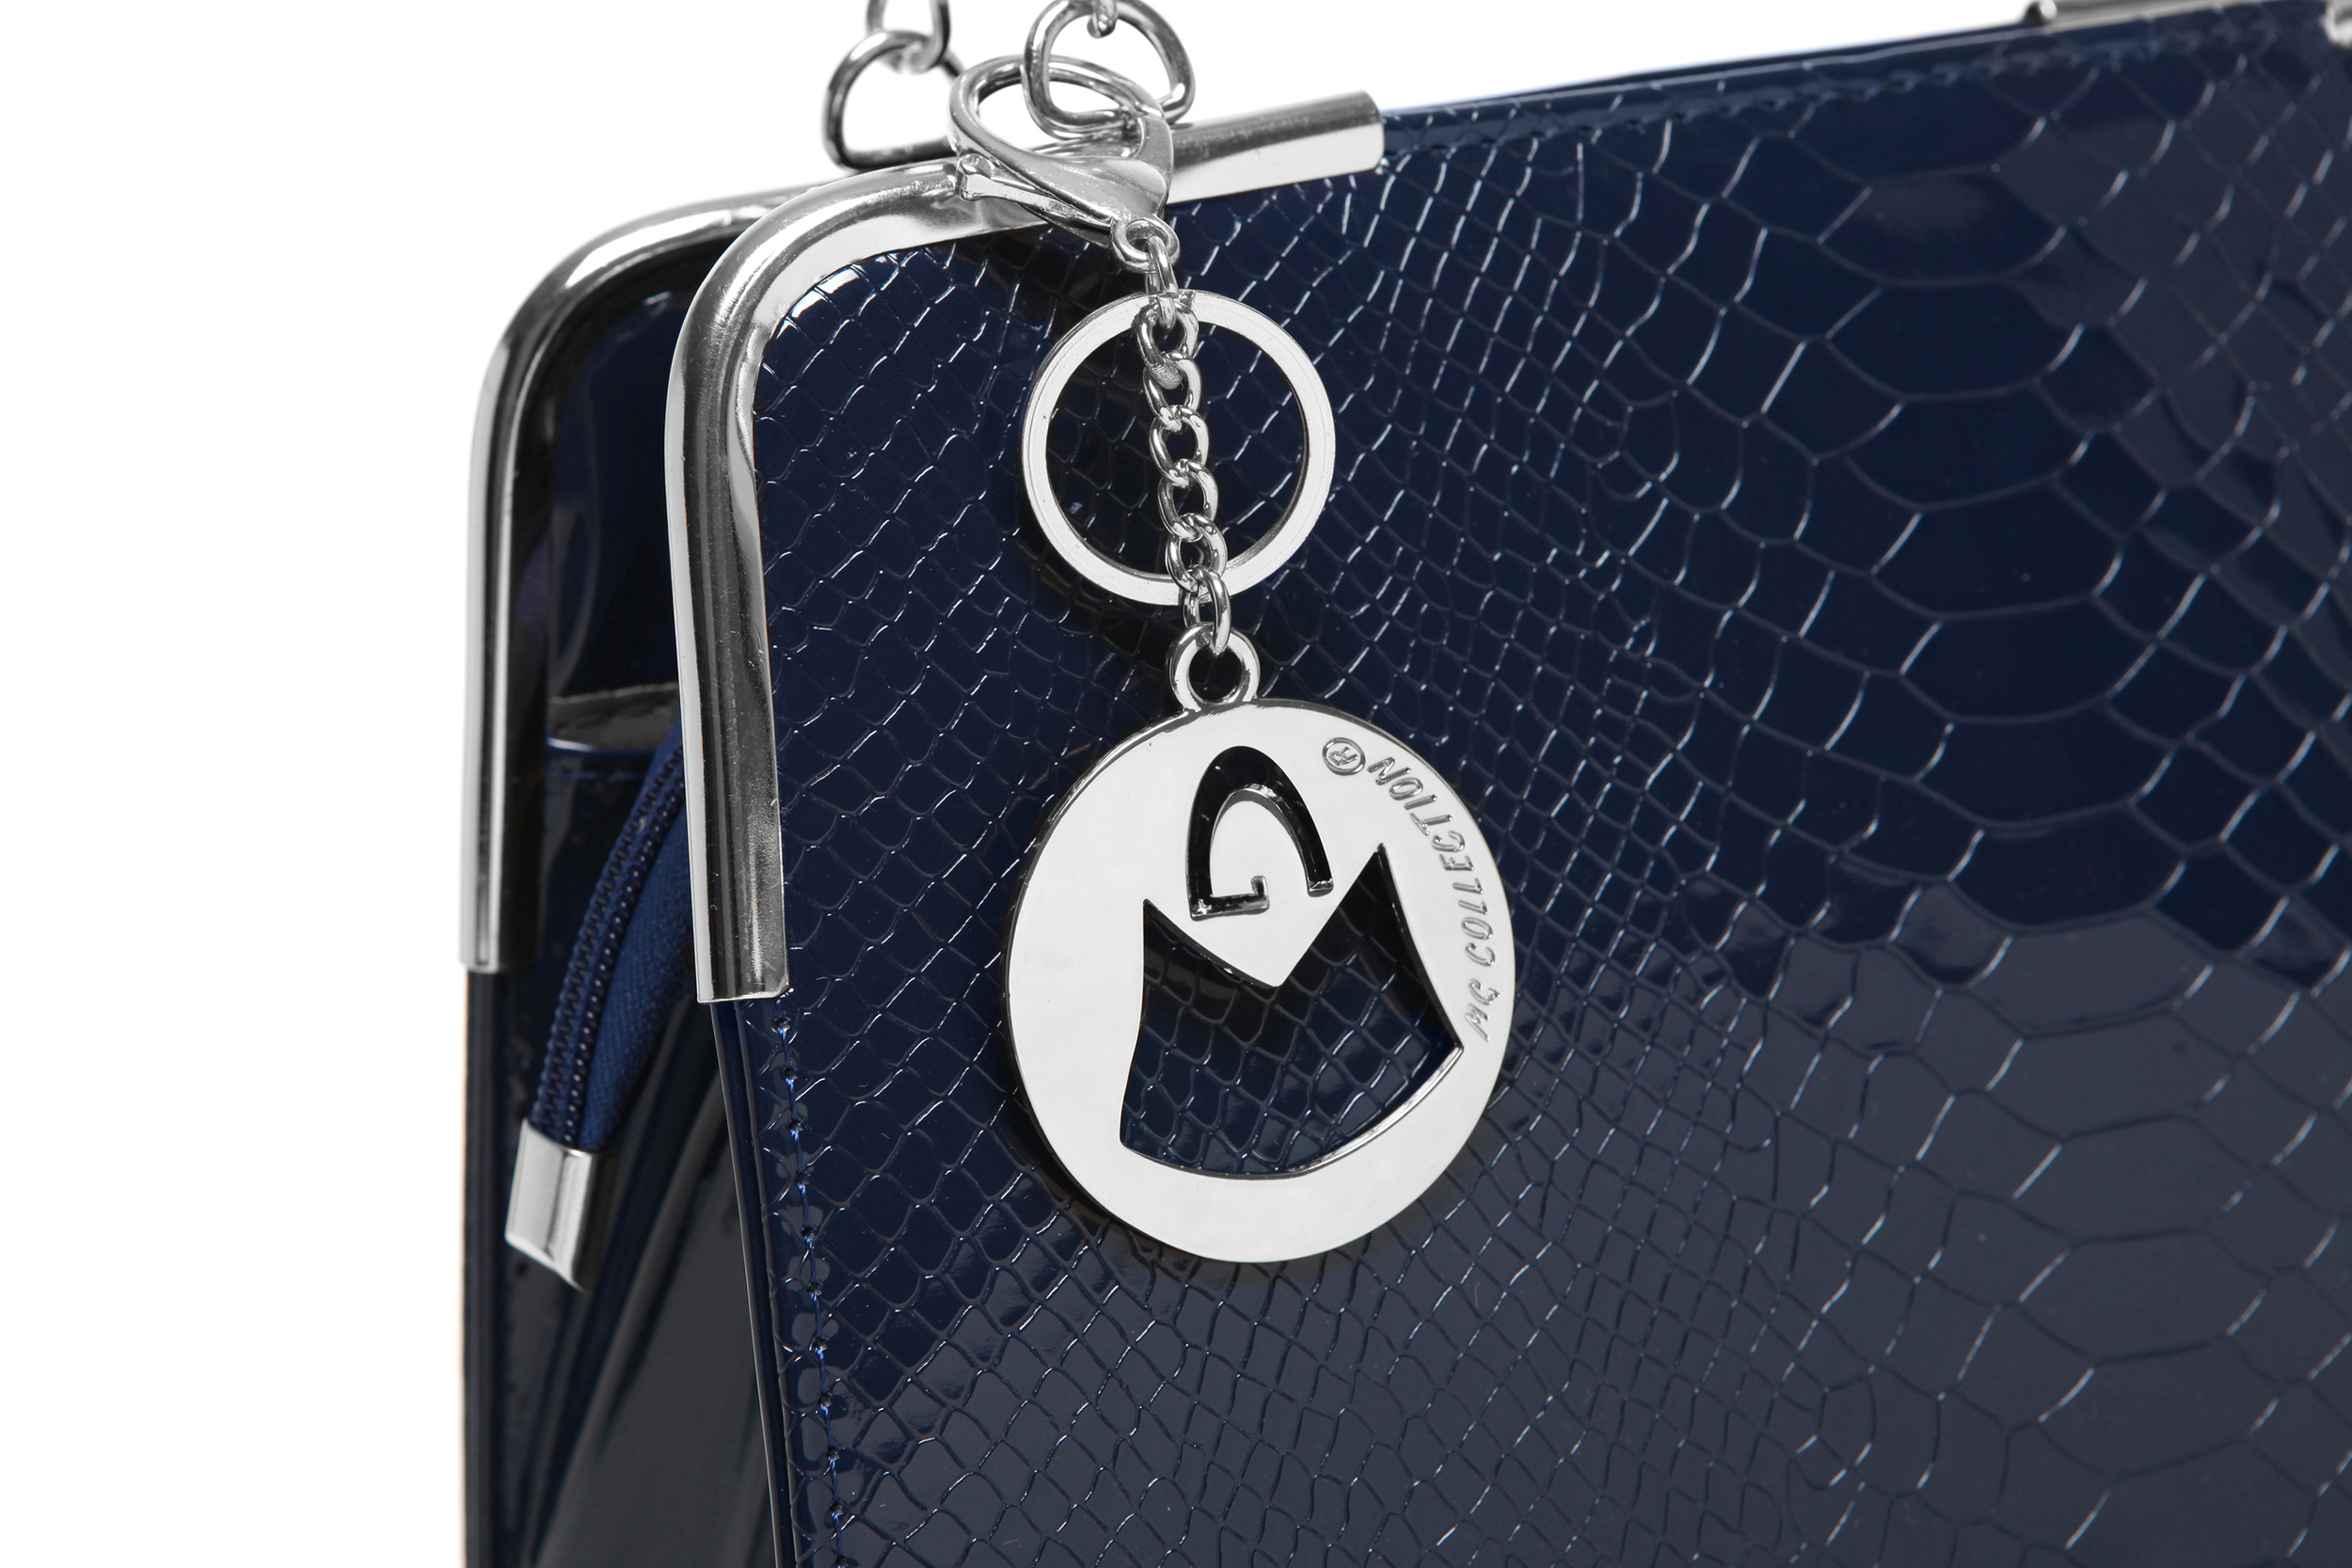 Matana navy blue crocodile print high gloss tote closeup image